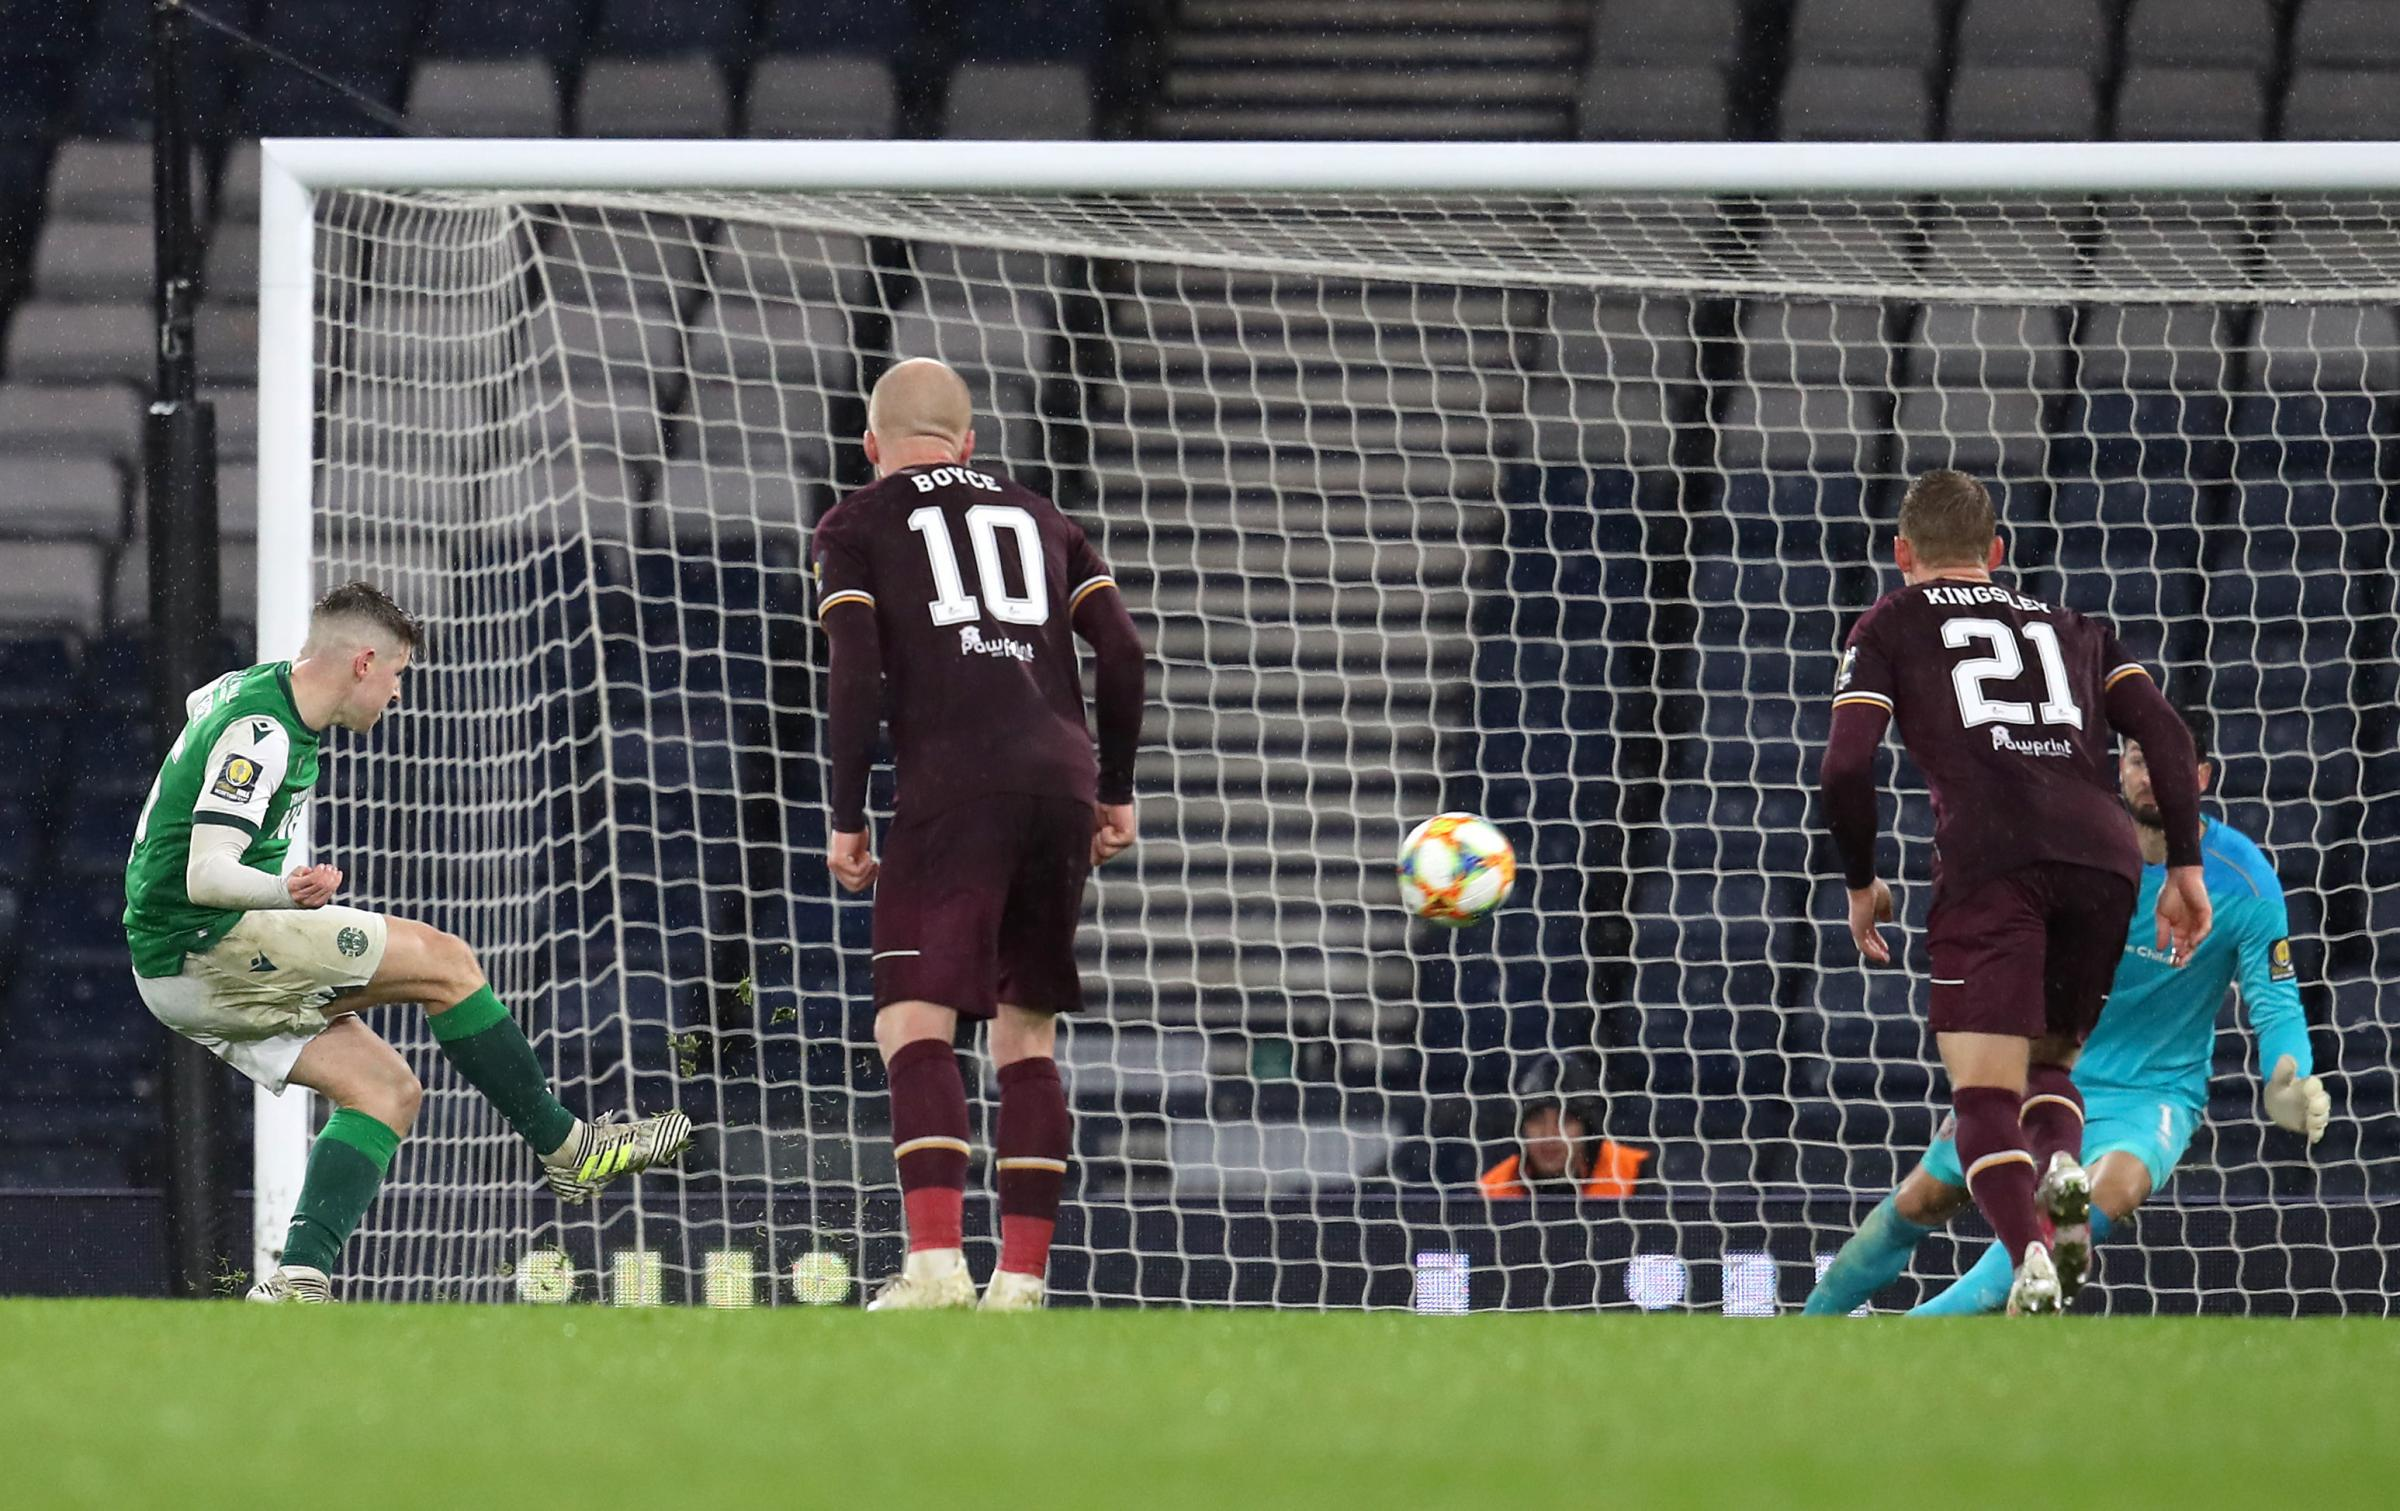 Jack Ross: Hibs striker Kevin Nisbet was brave to take Hampden penalty - he'll bounce back from semi-final miss | Glasgow Times